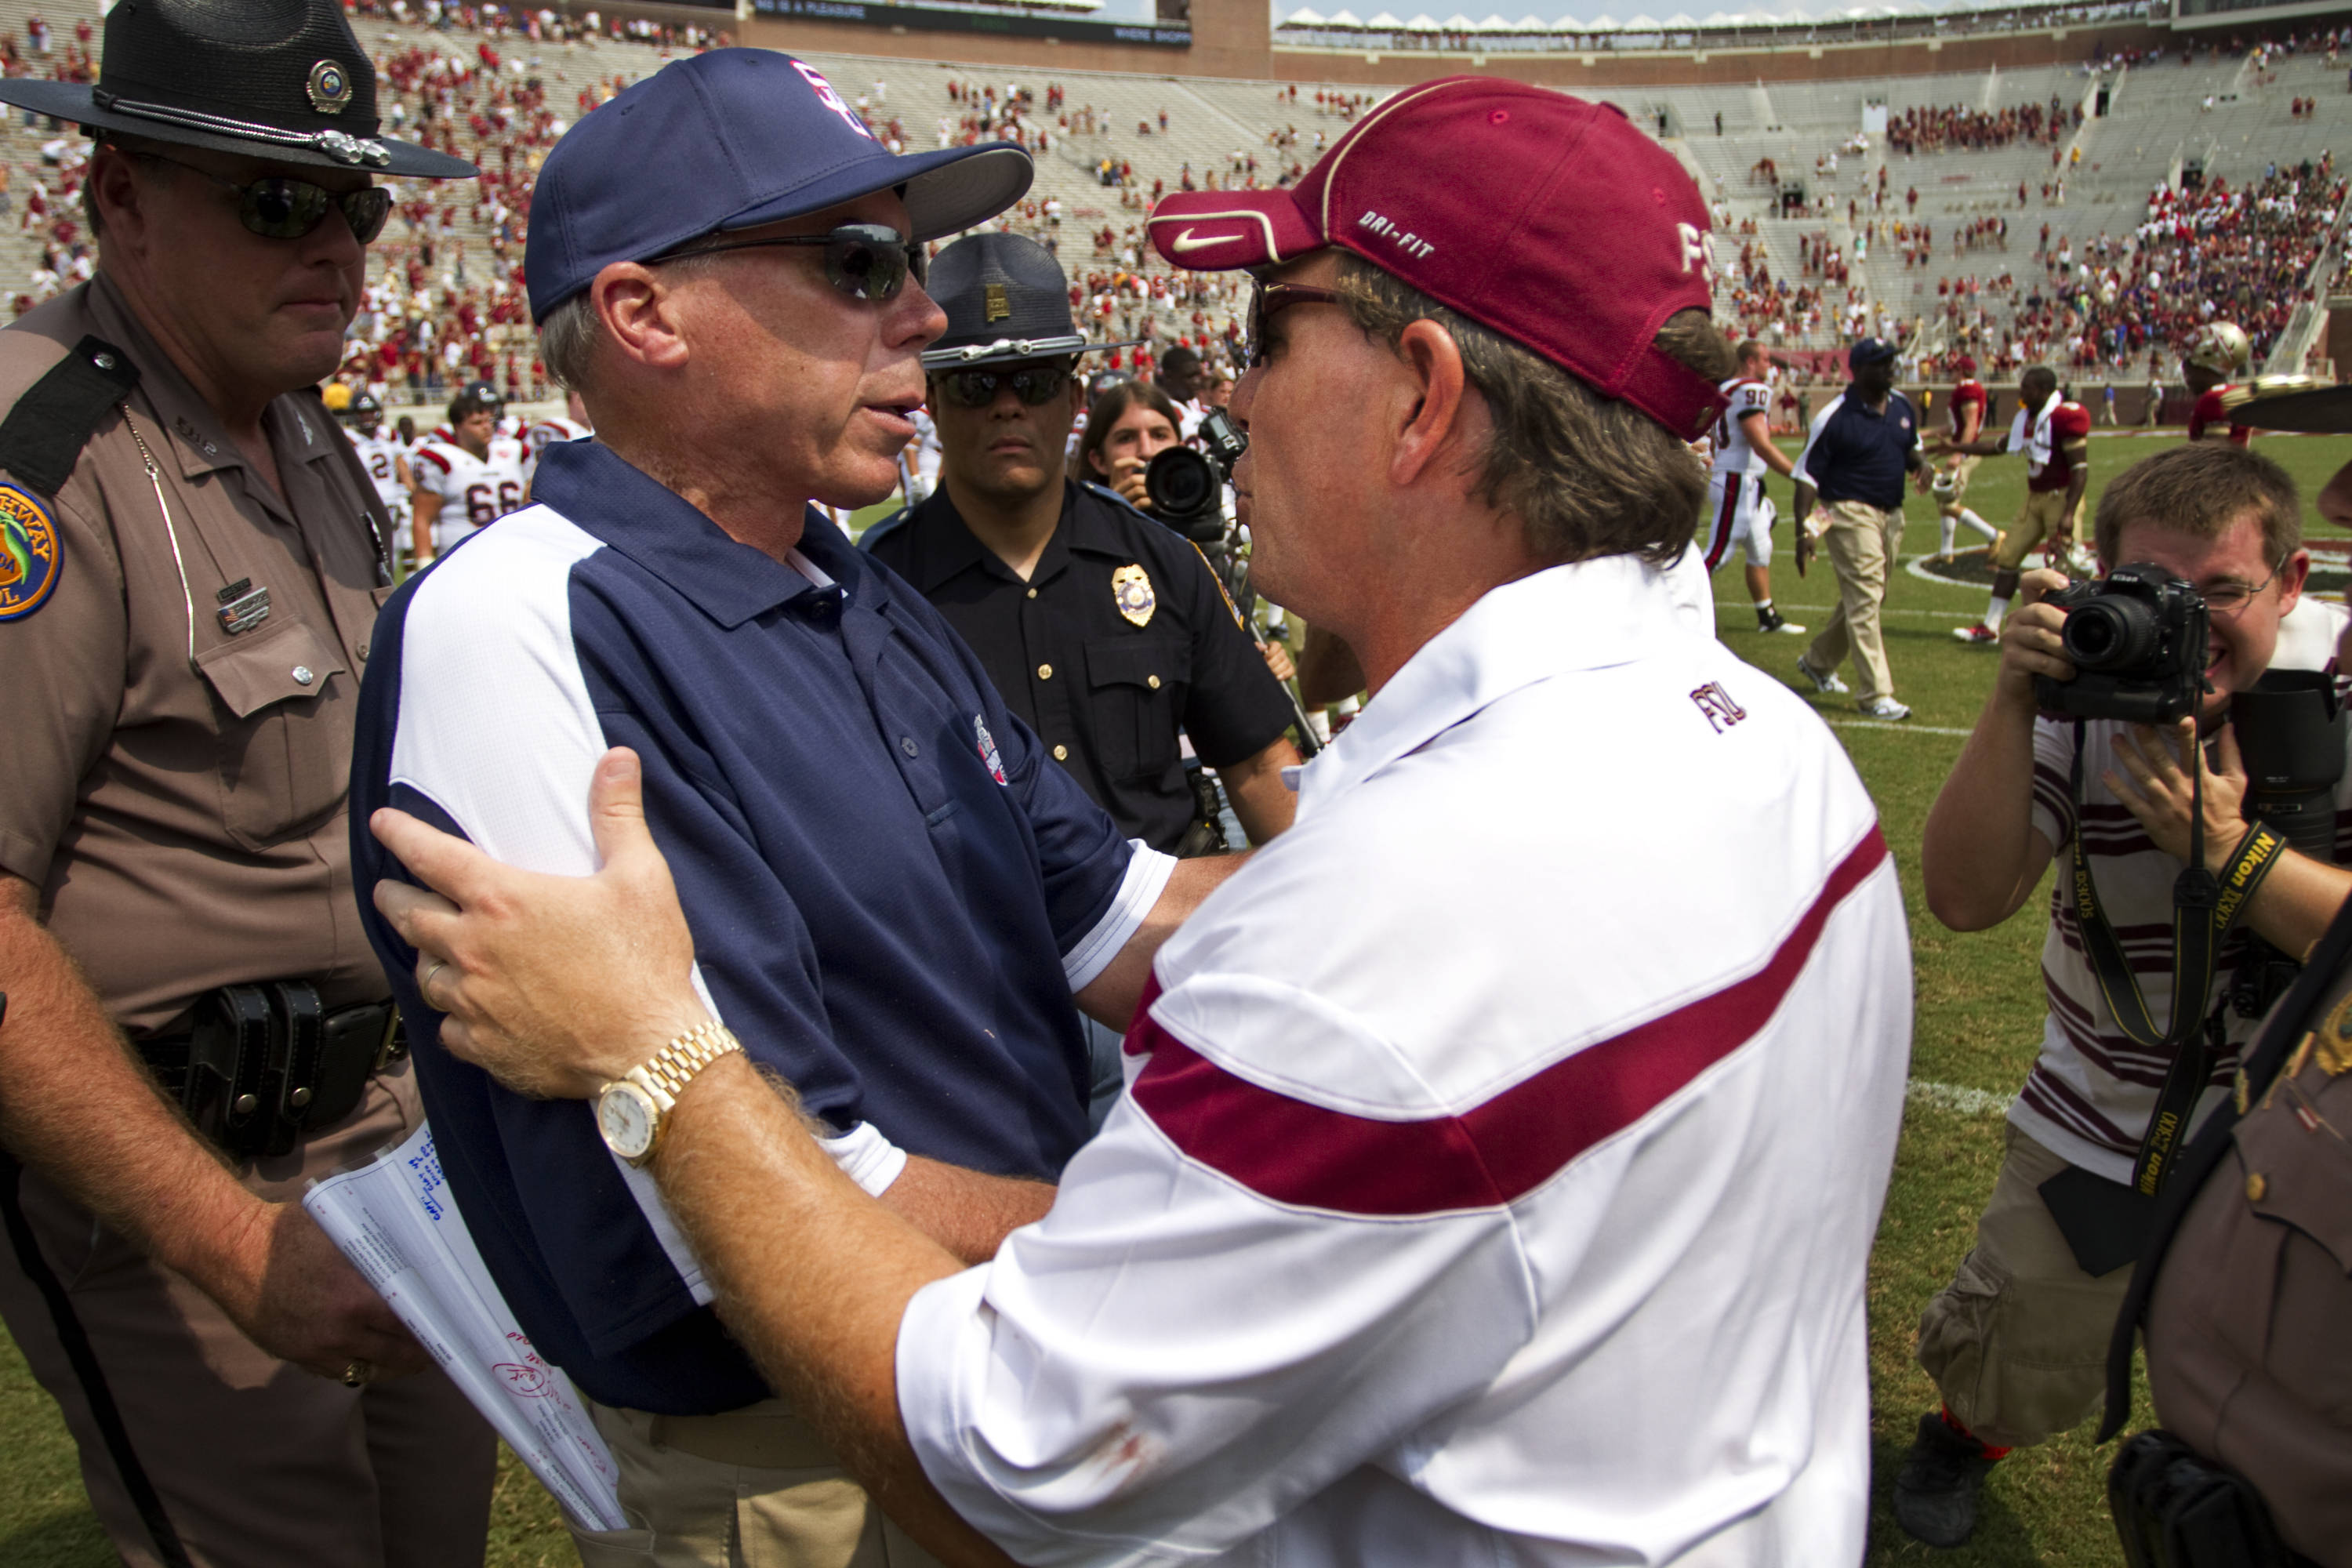 Jimbo Fisher shakes hands with Samford's coach after FSU's win.